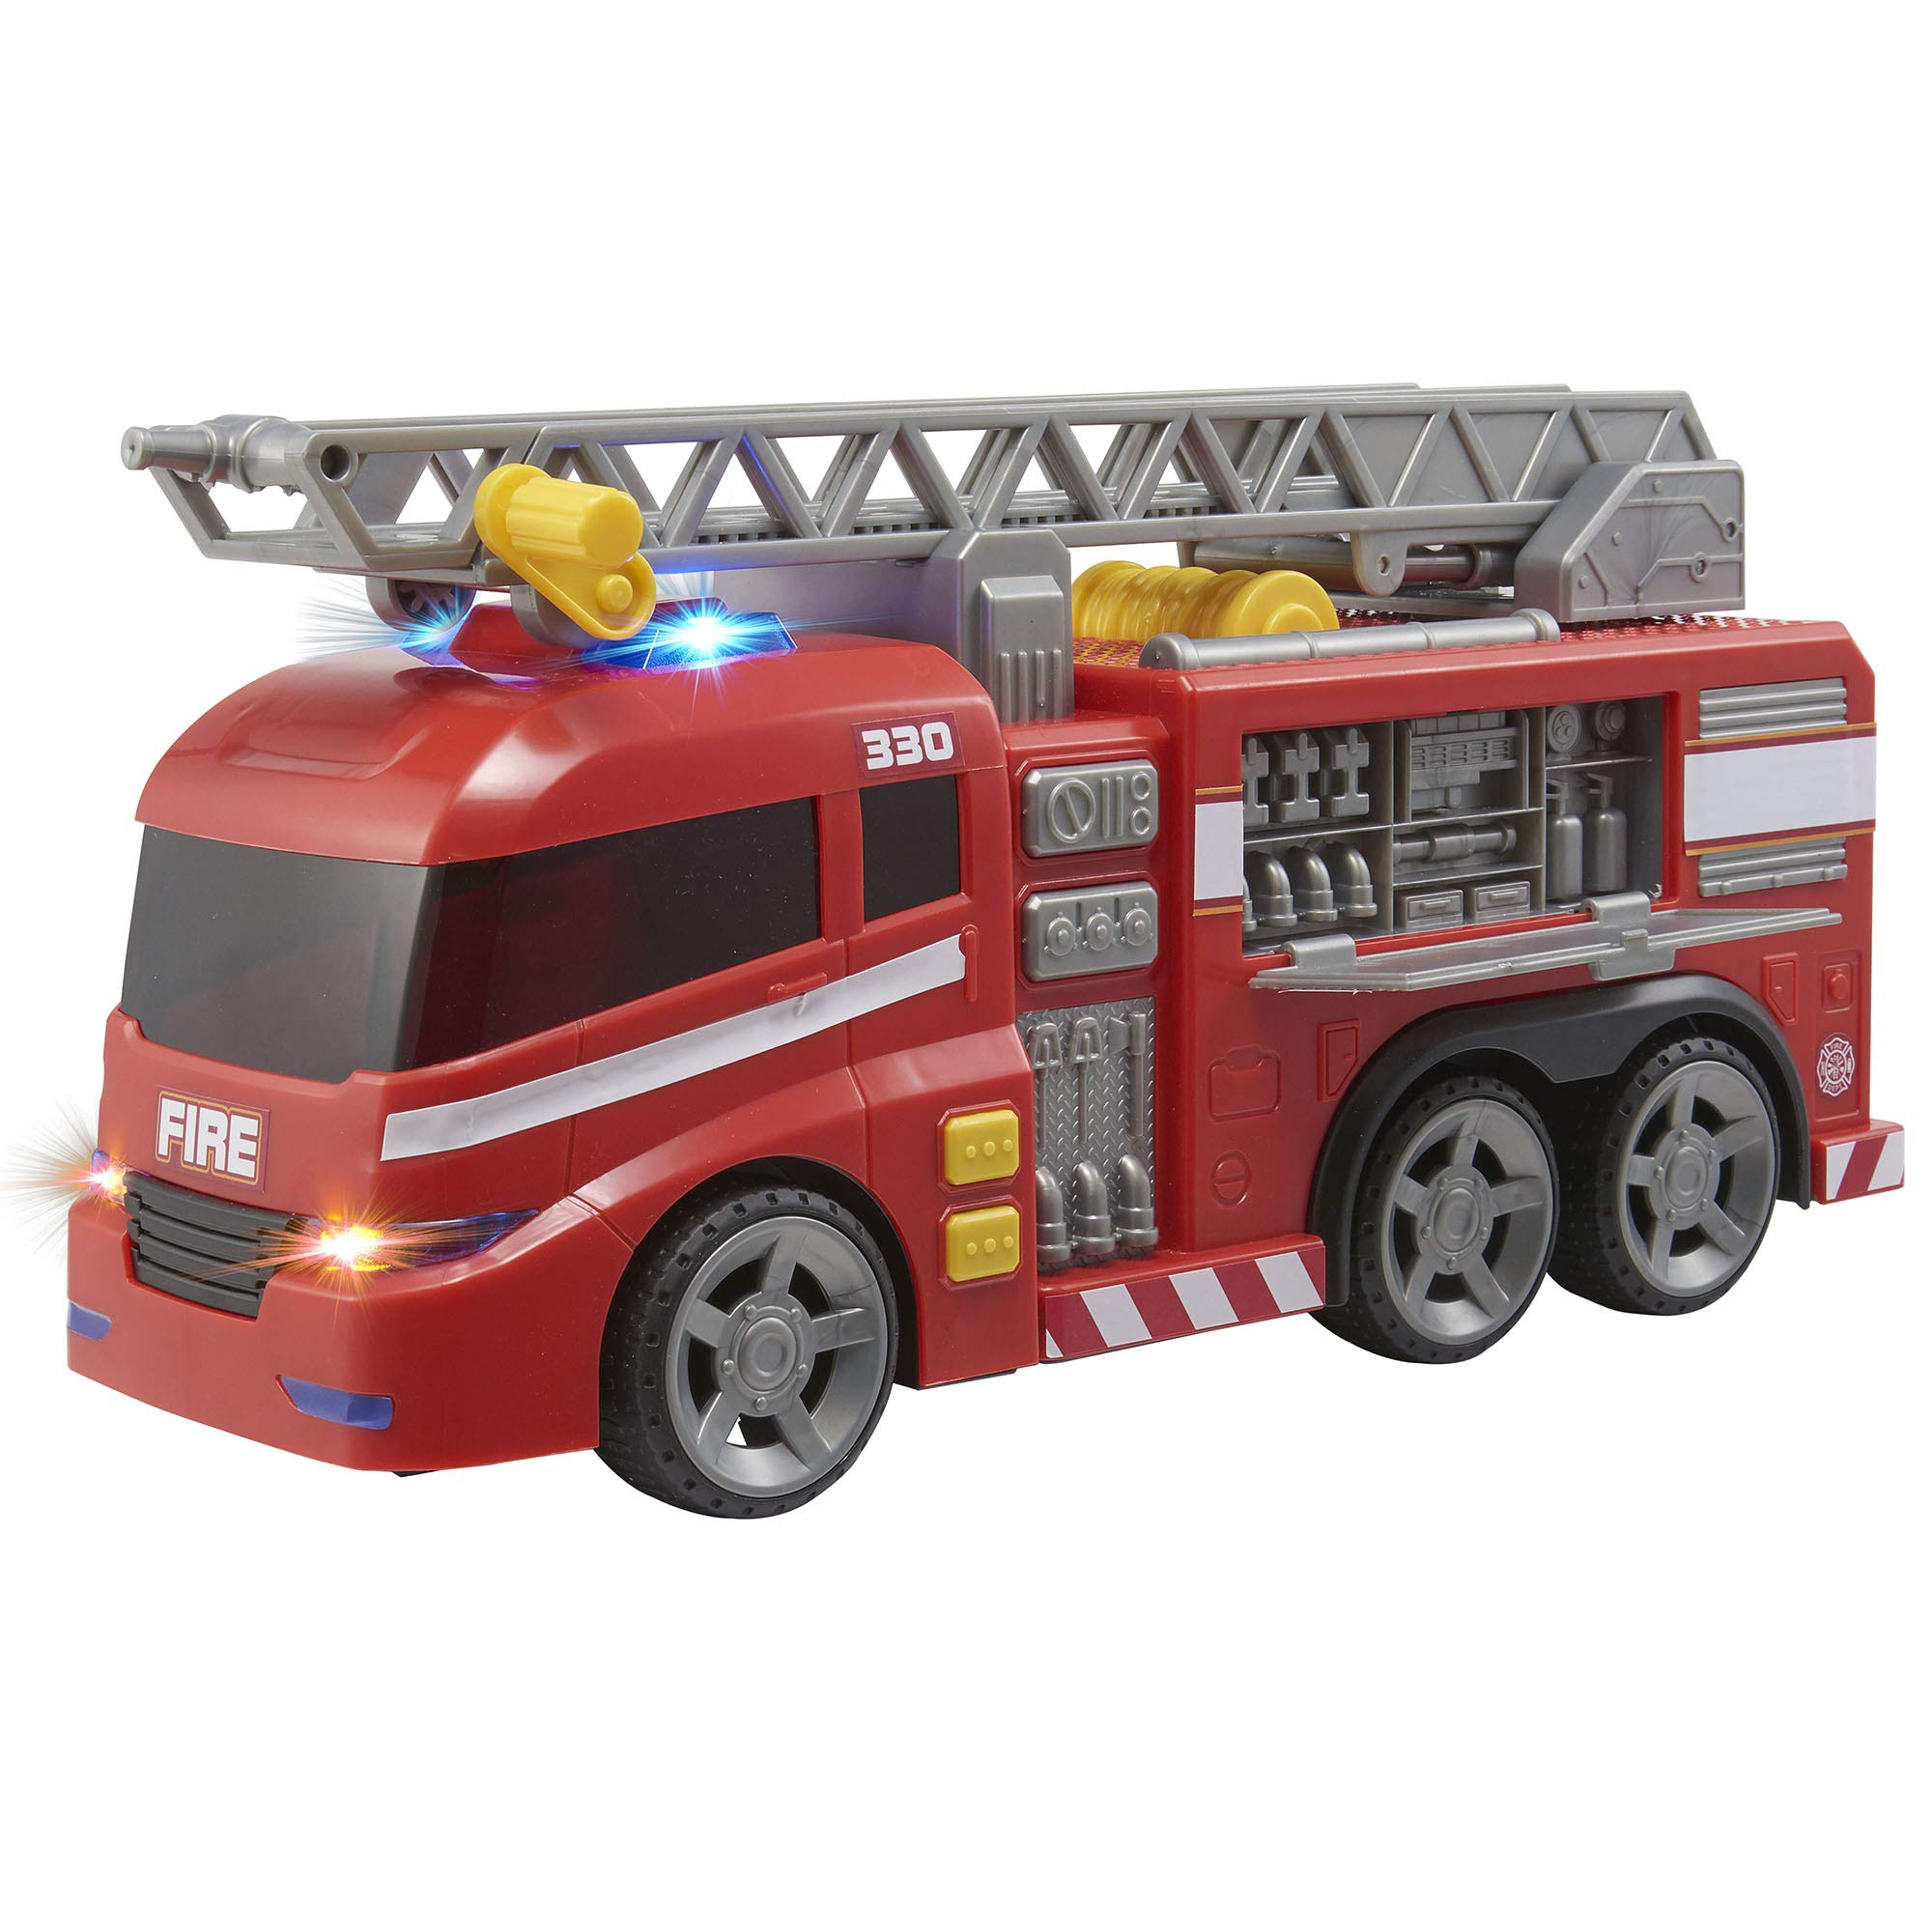 Teamsterz Large Light & Sound Fire Engine   Kids Emergency Toy Vehicle Fire Truck Great For Children Aged 3+